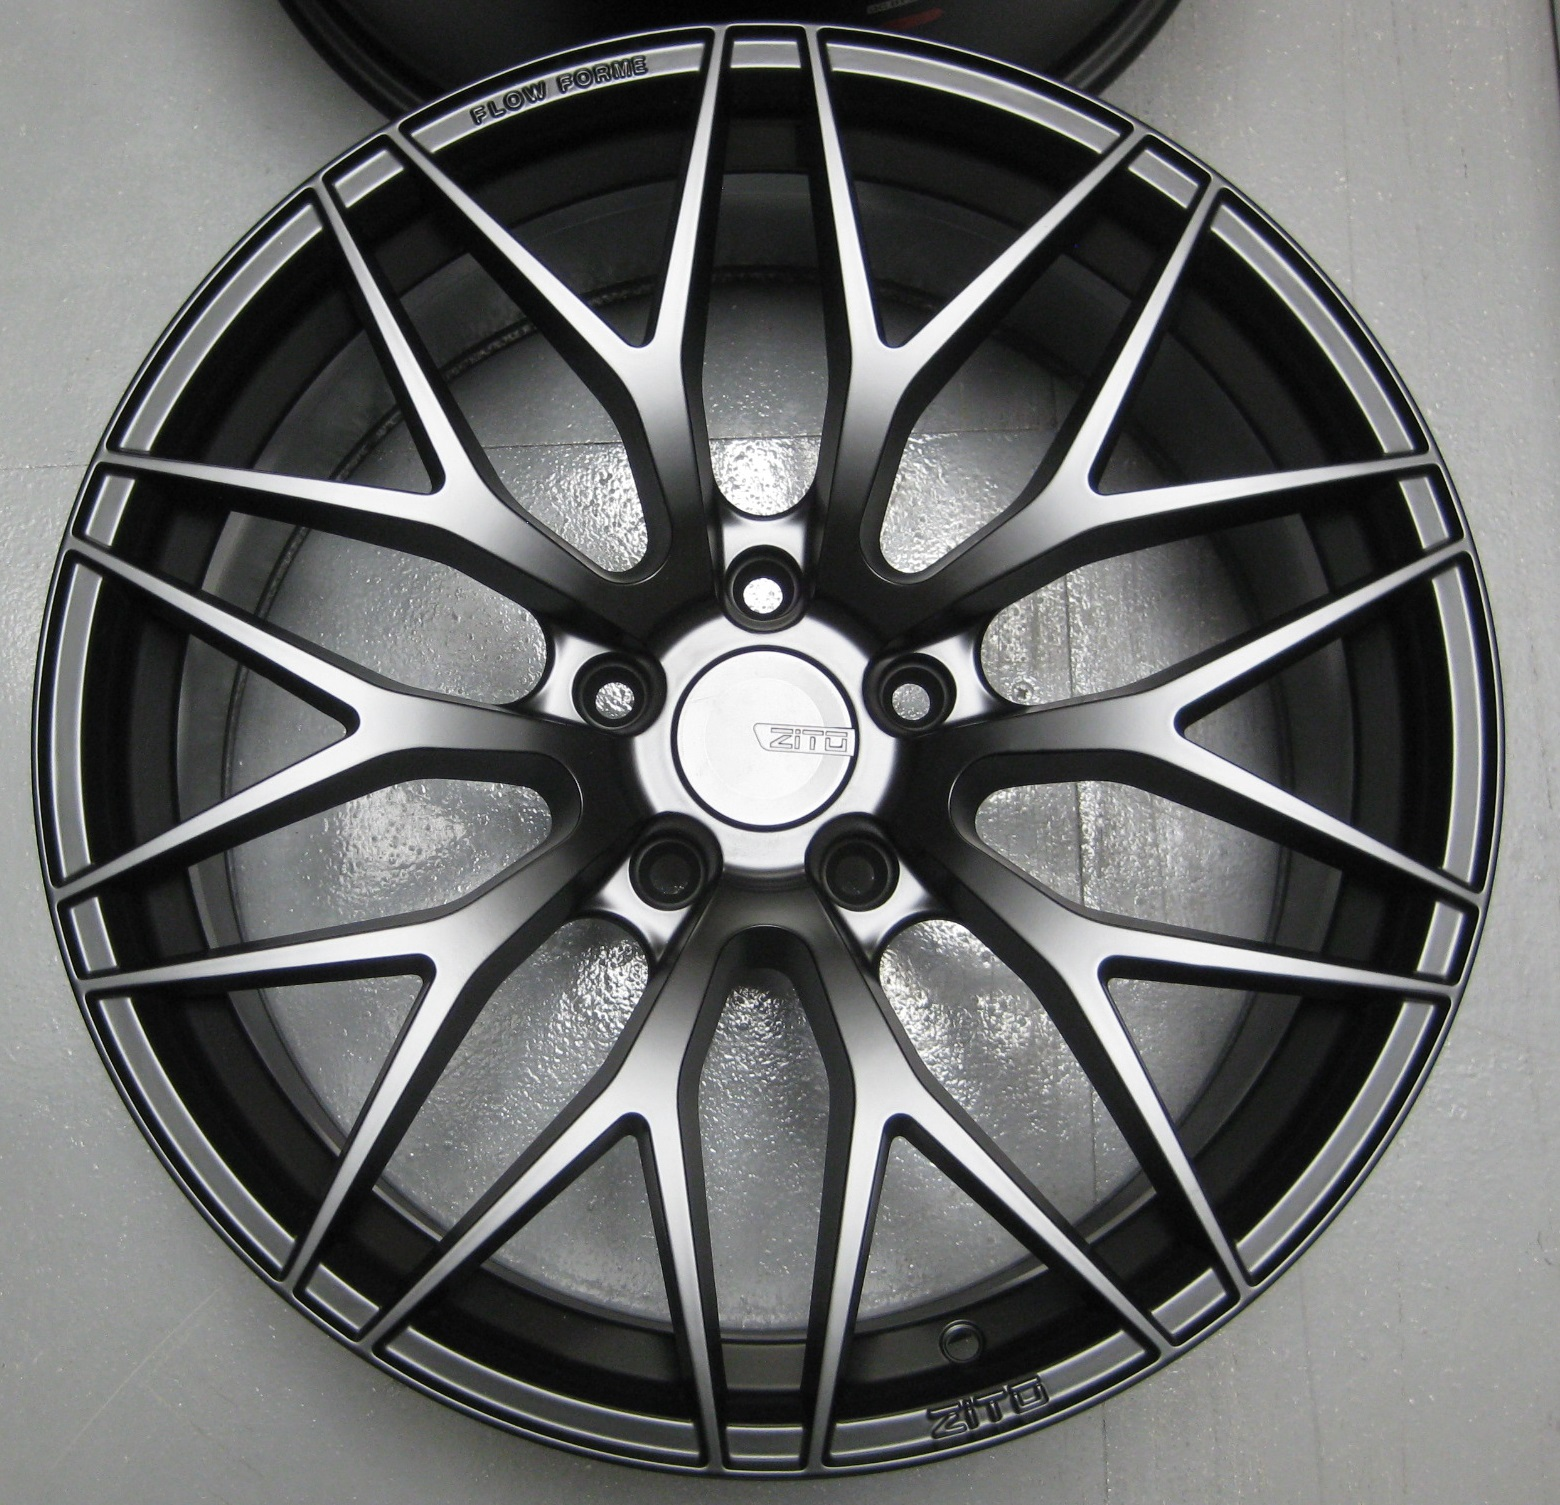 New 19 Quot Zito Zf01 Flow Formed Alloys In Satin Black With